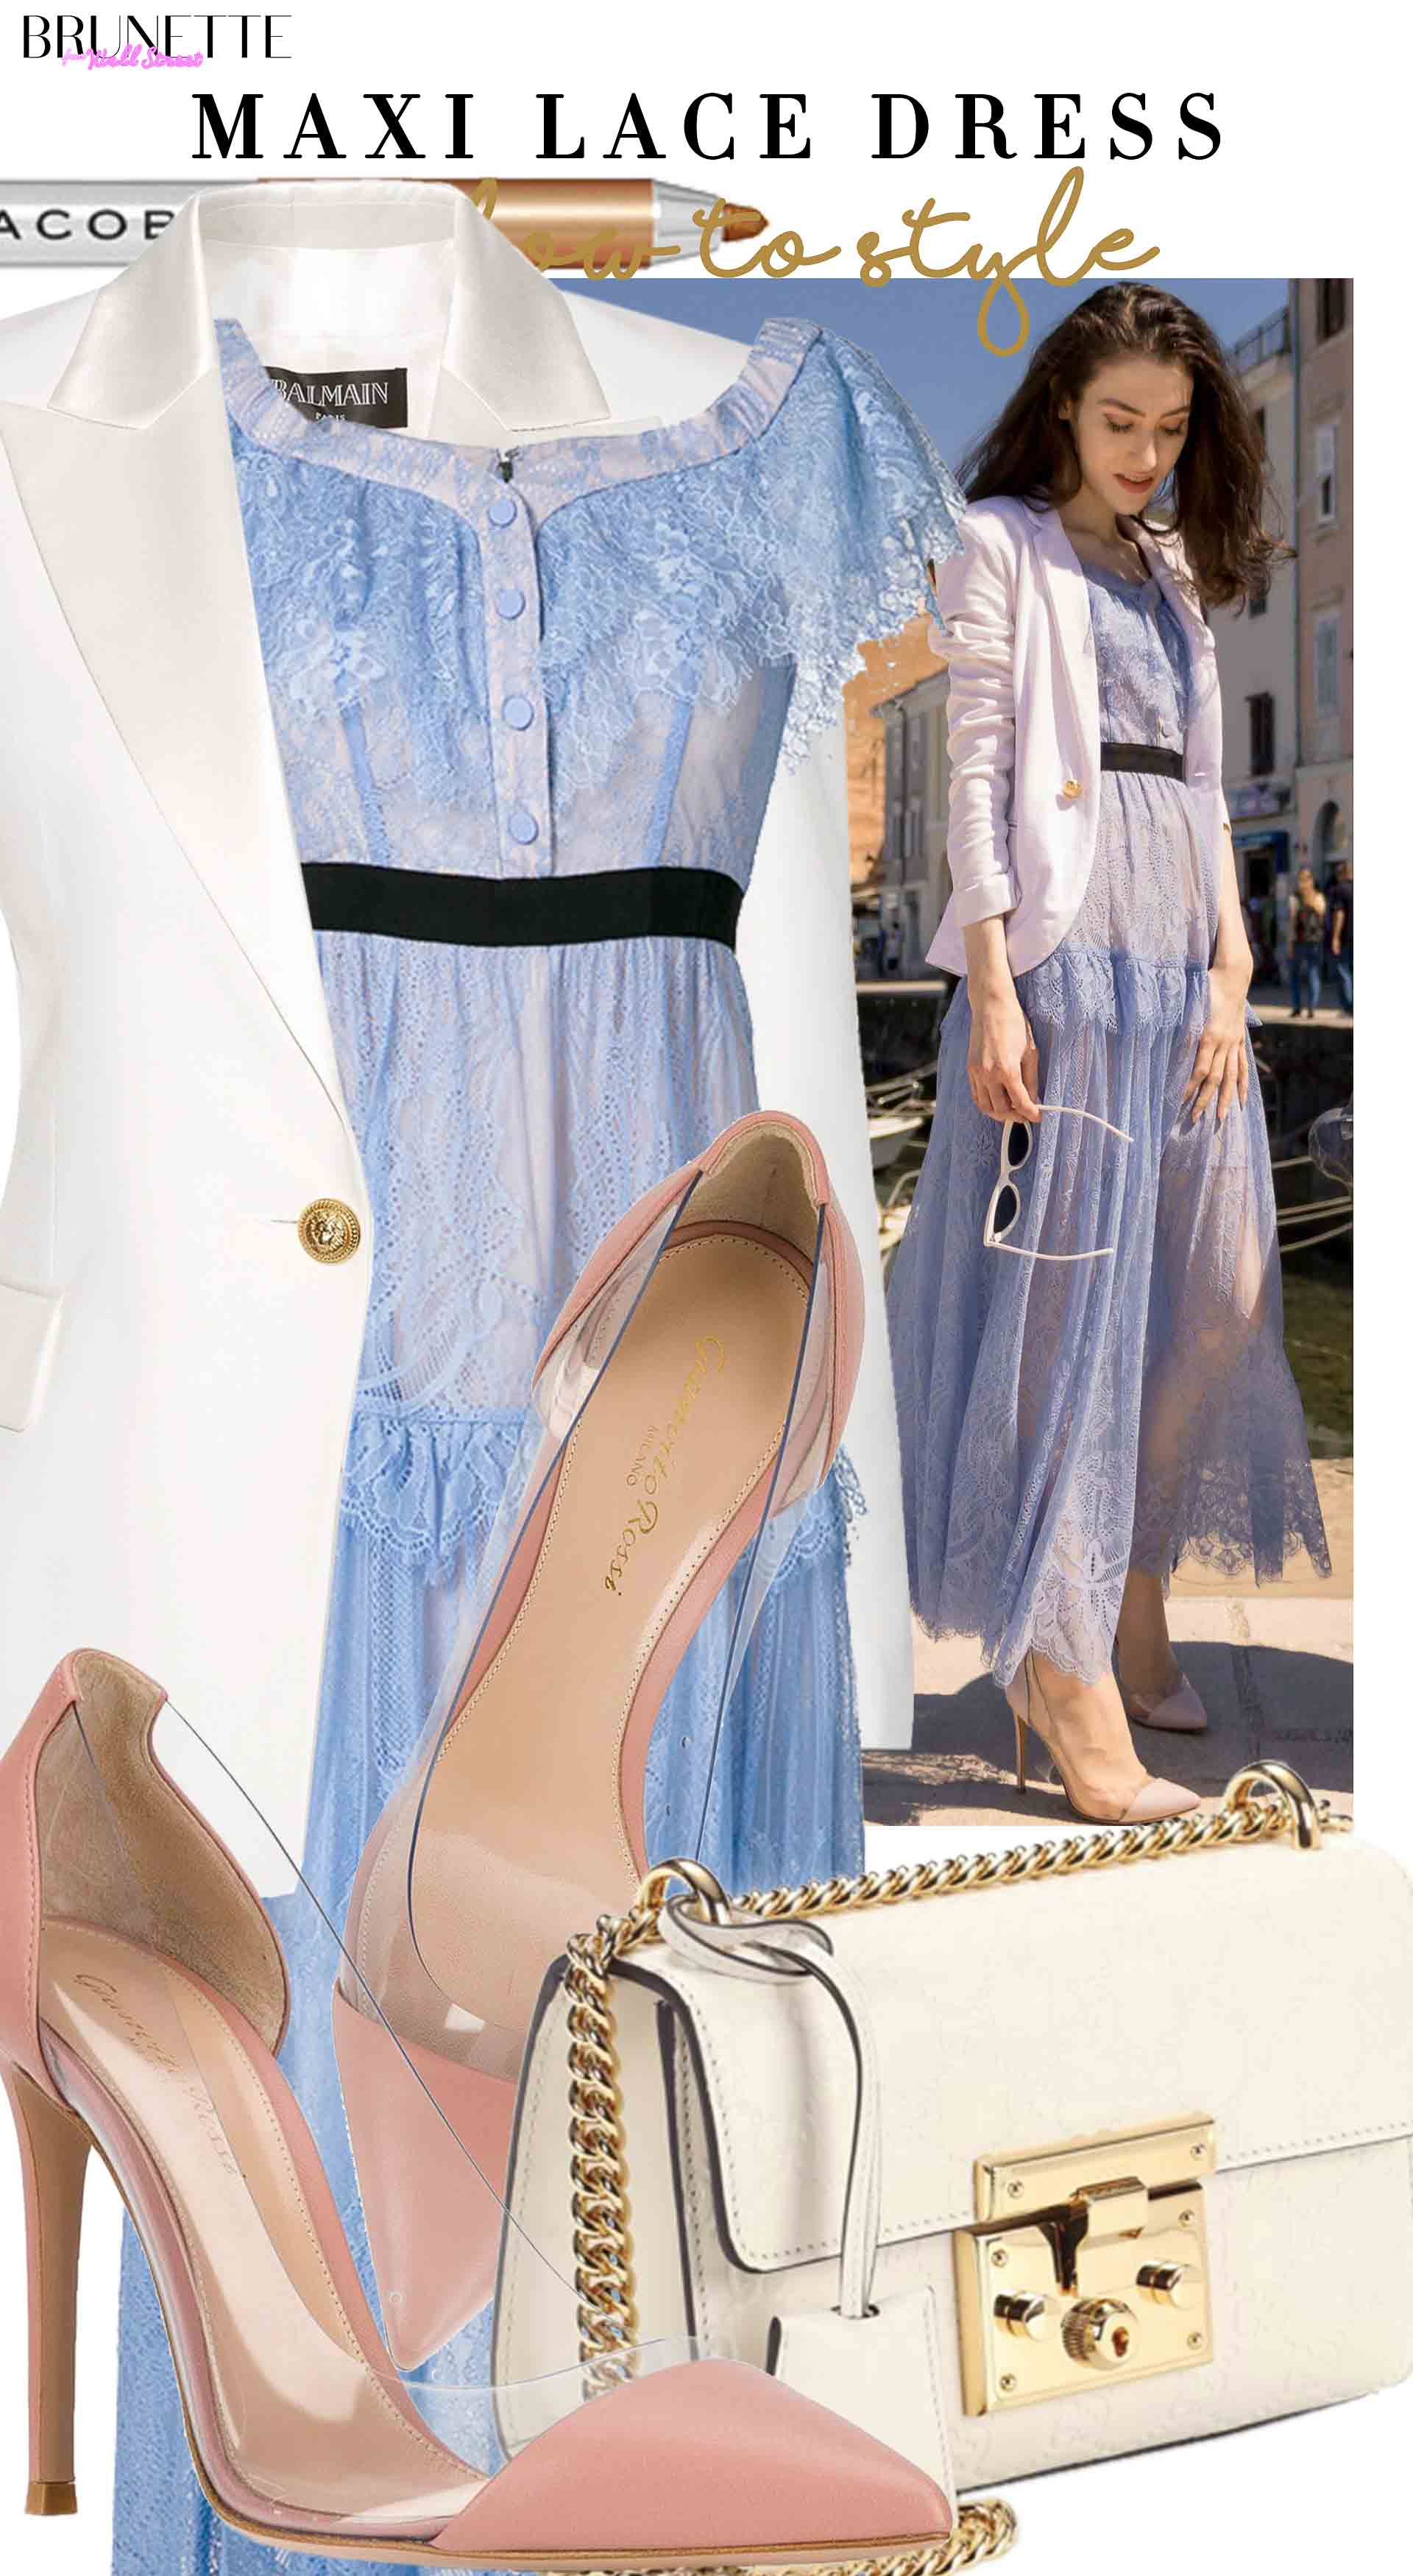 Brunette from Wall Street how to style maxi lace dress for wedding as a guest